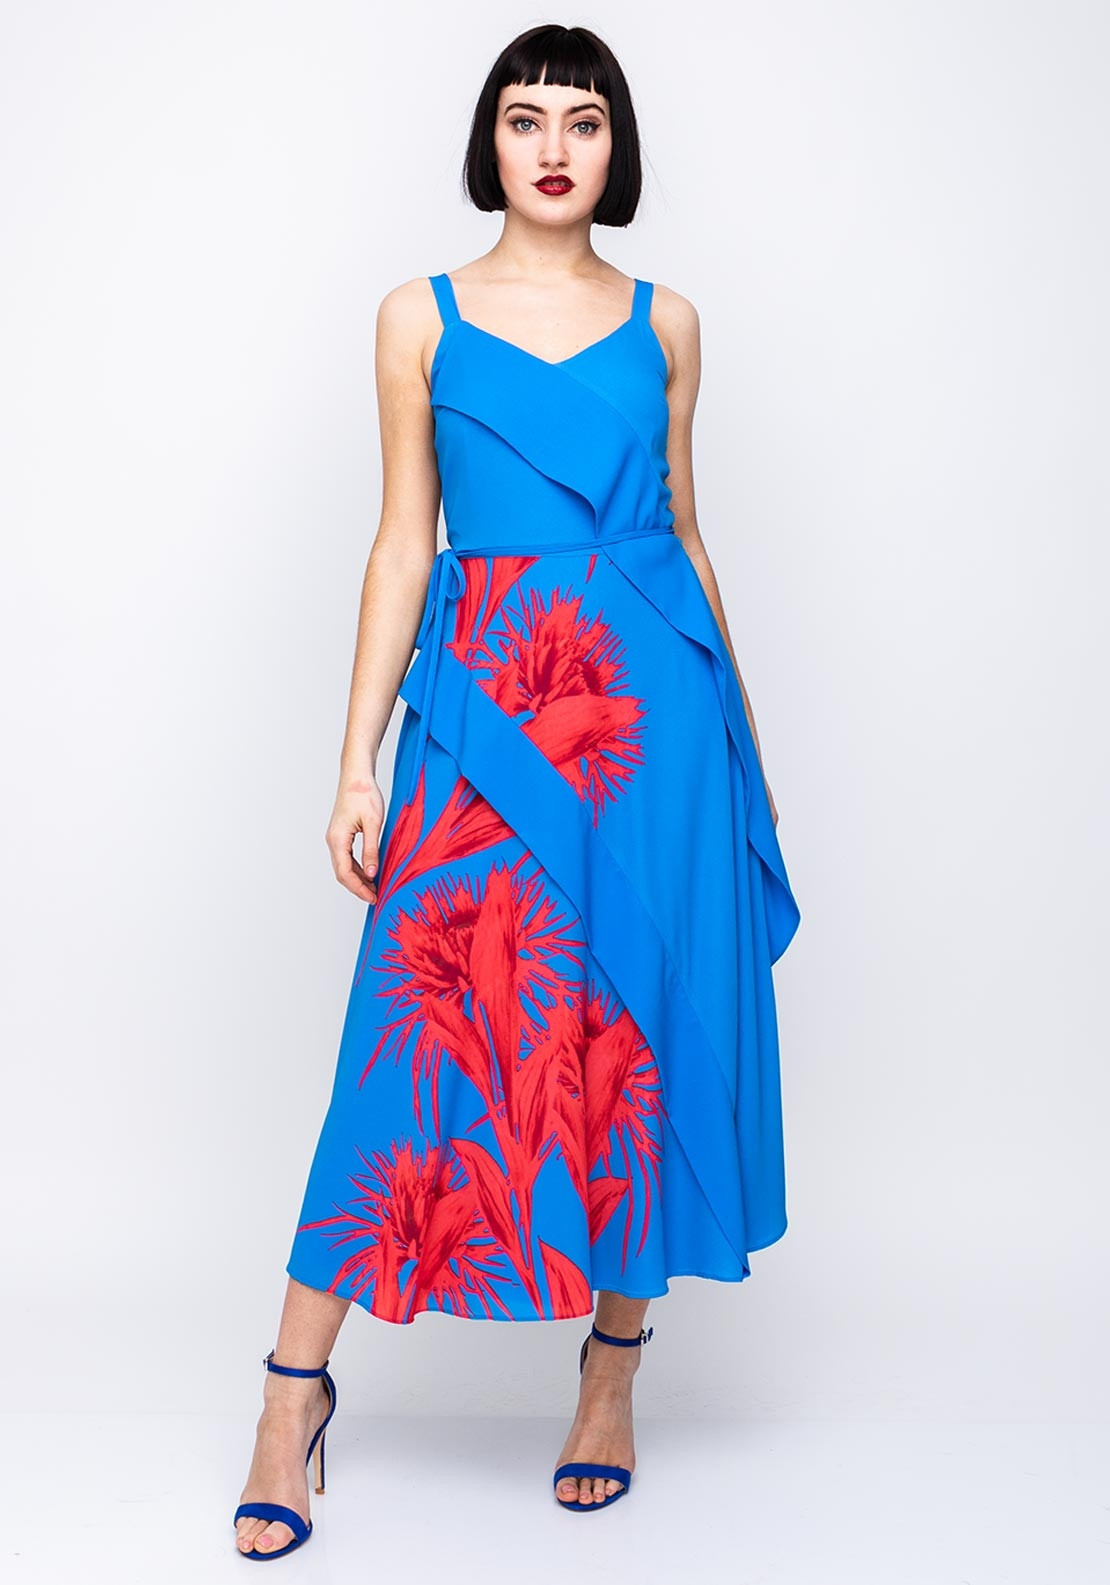 Summer Dresses For A Wedding Abroad Dacc